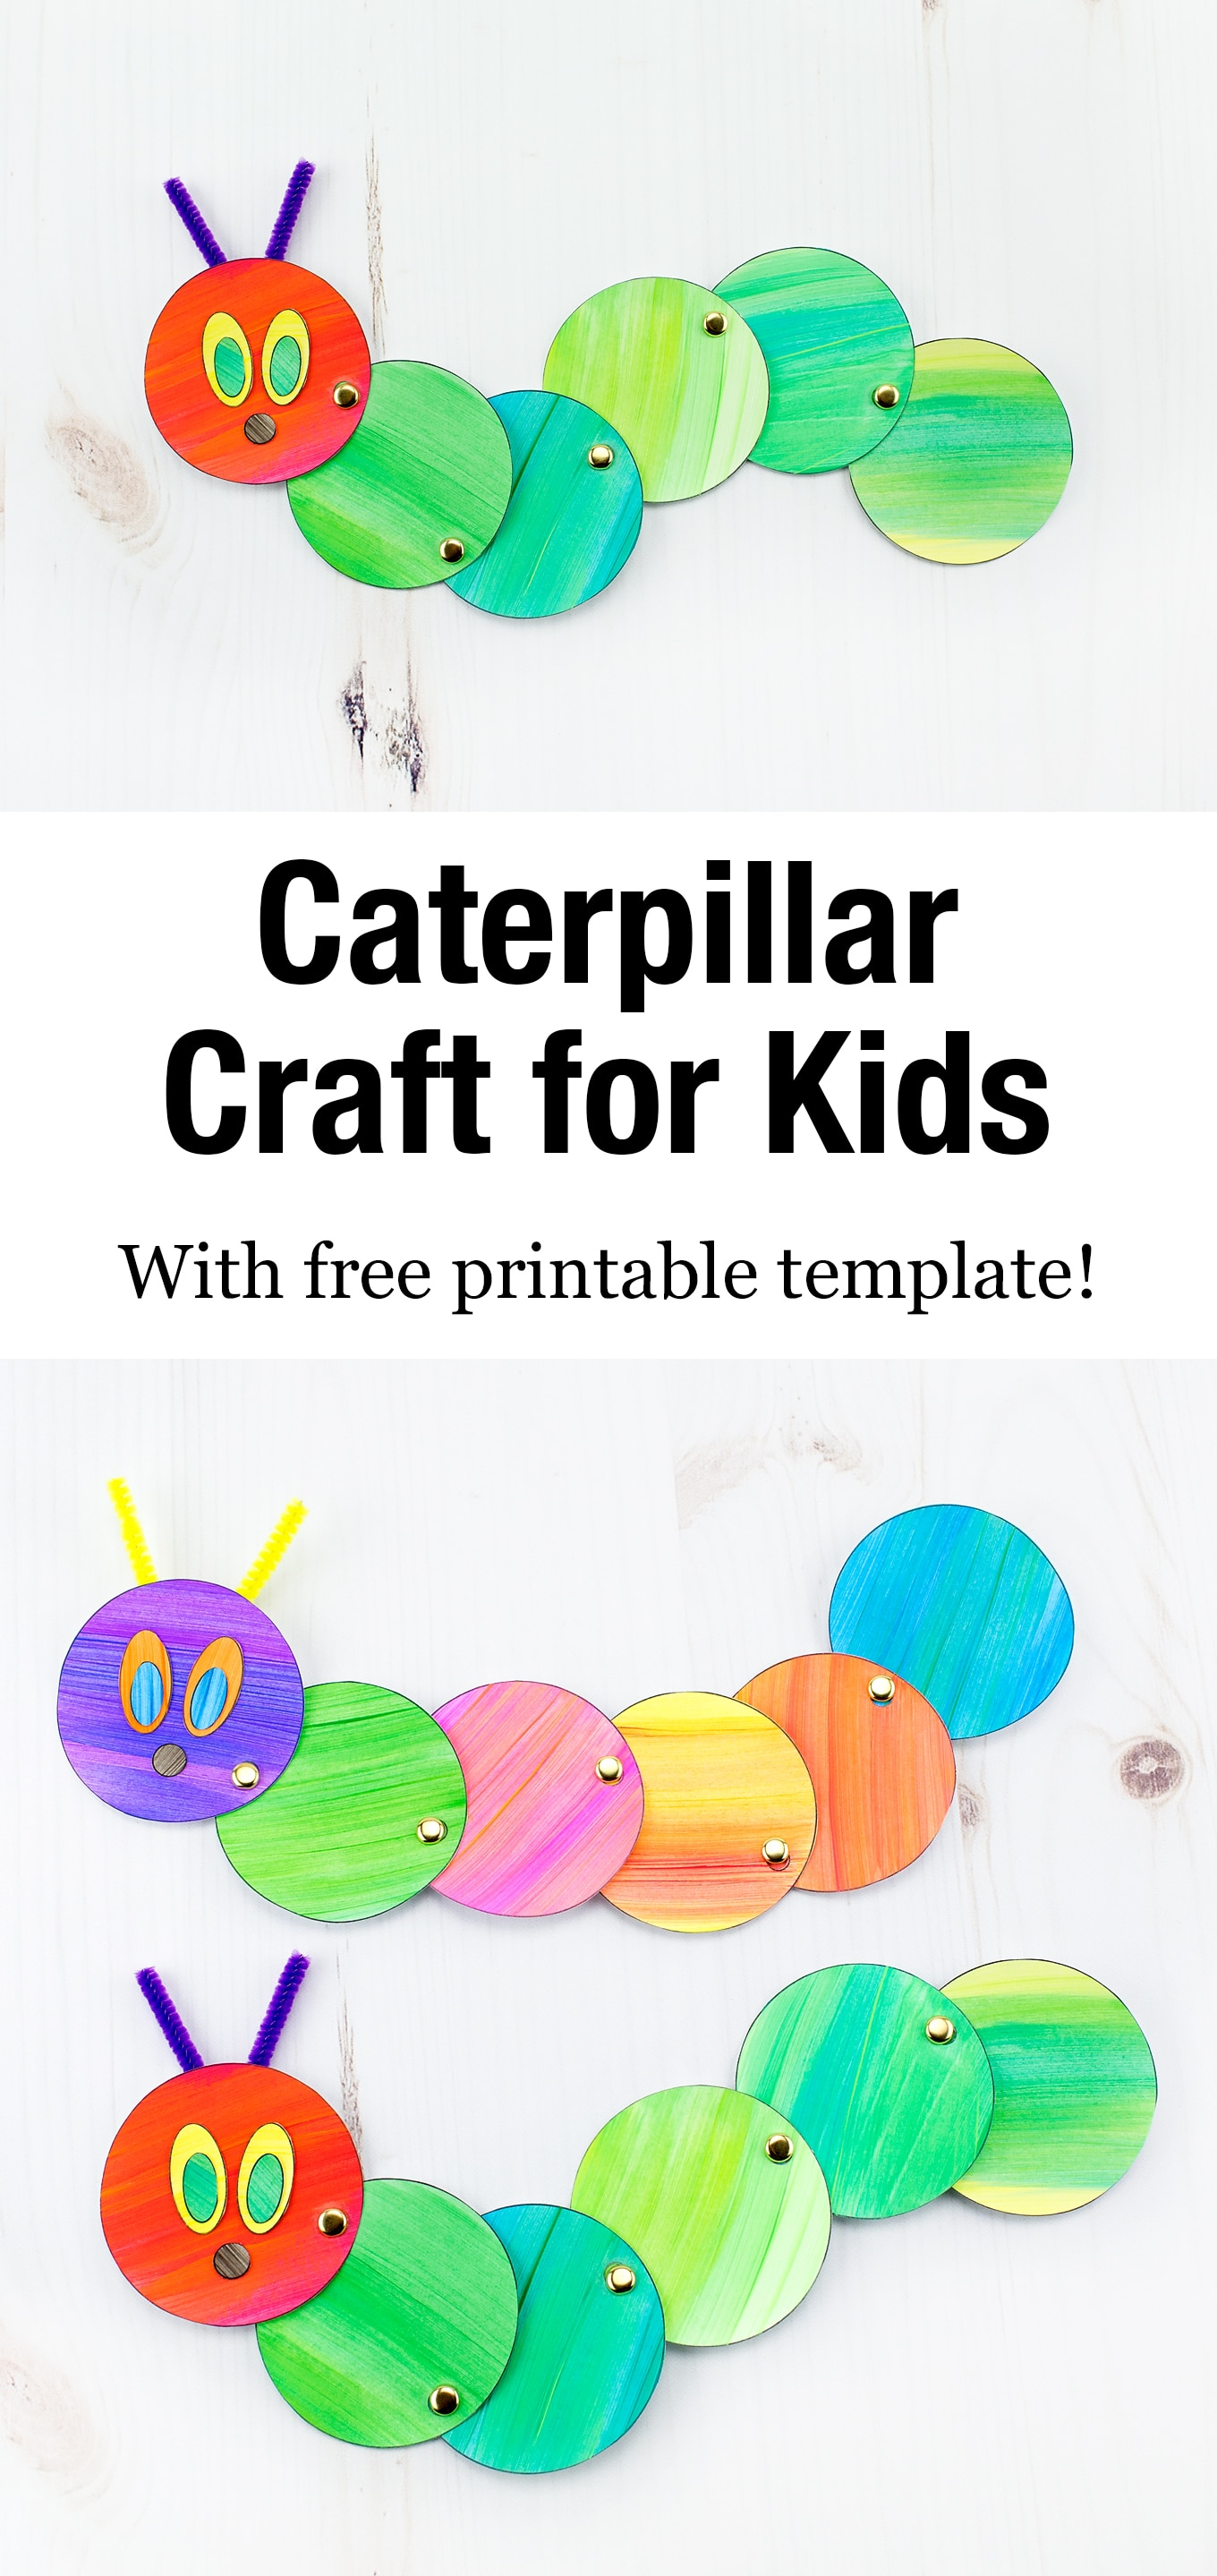 Looking for an easy and fun caterpillar craft for kids? Inspired by The Very Hungry Caterpillar, our simple caterpillar craft includes a printable template, making it perfect for home or school. #caterpillarcraft #springcraft #kidscrafts #papercrafts #veryhungrycaterpillarcrafts via @firefliesandmudpies